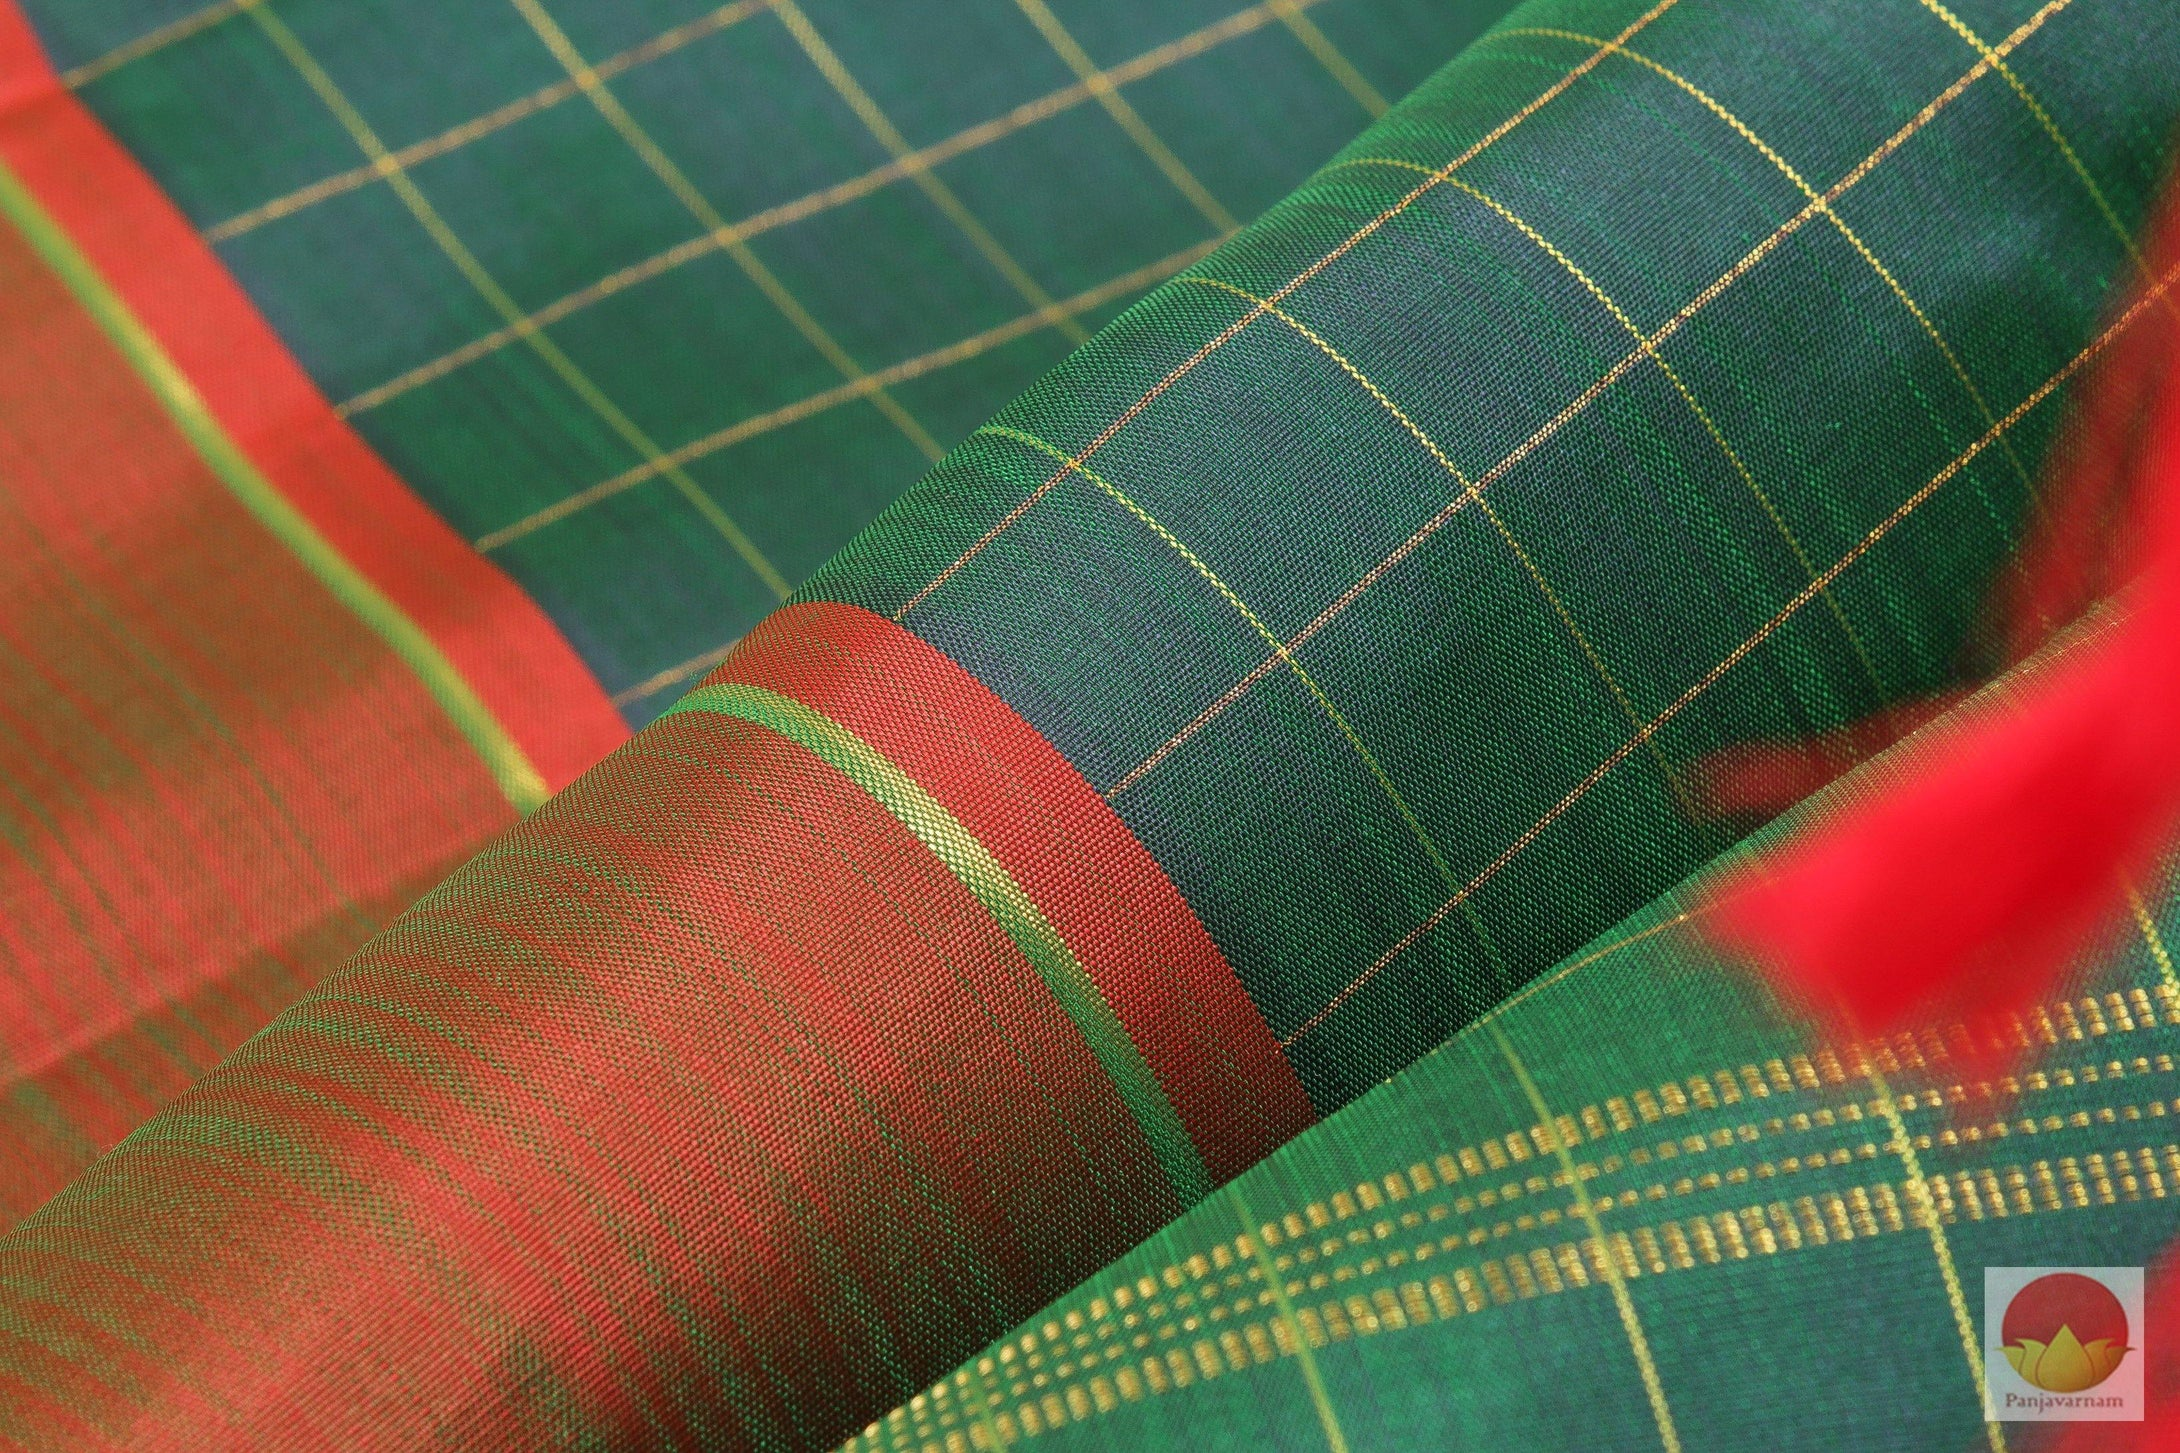 Kanchipuram Silk Saree - Green & Brown - Pure Silk - Handwoven Silk Saree - PV G 2006 Archives